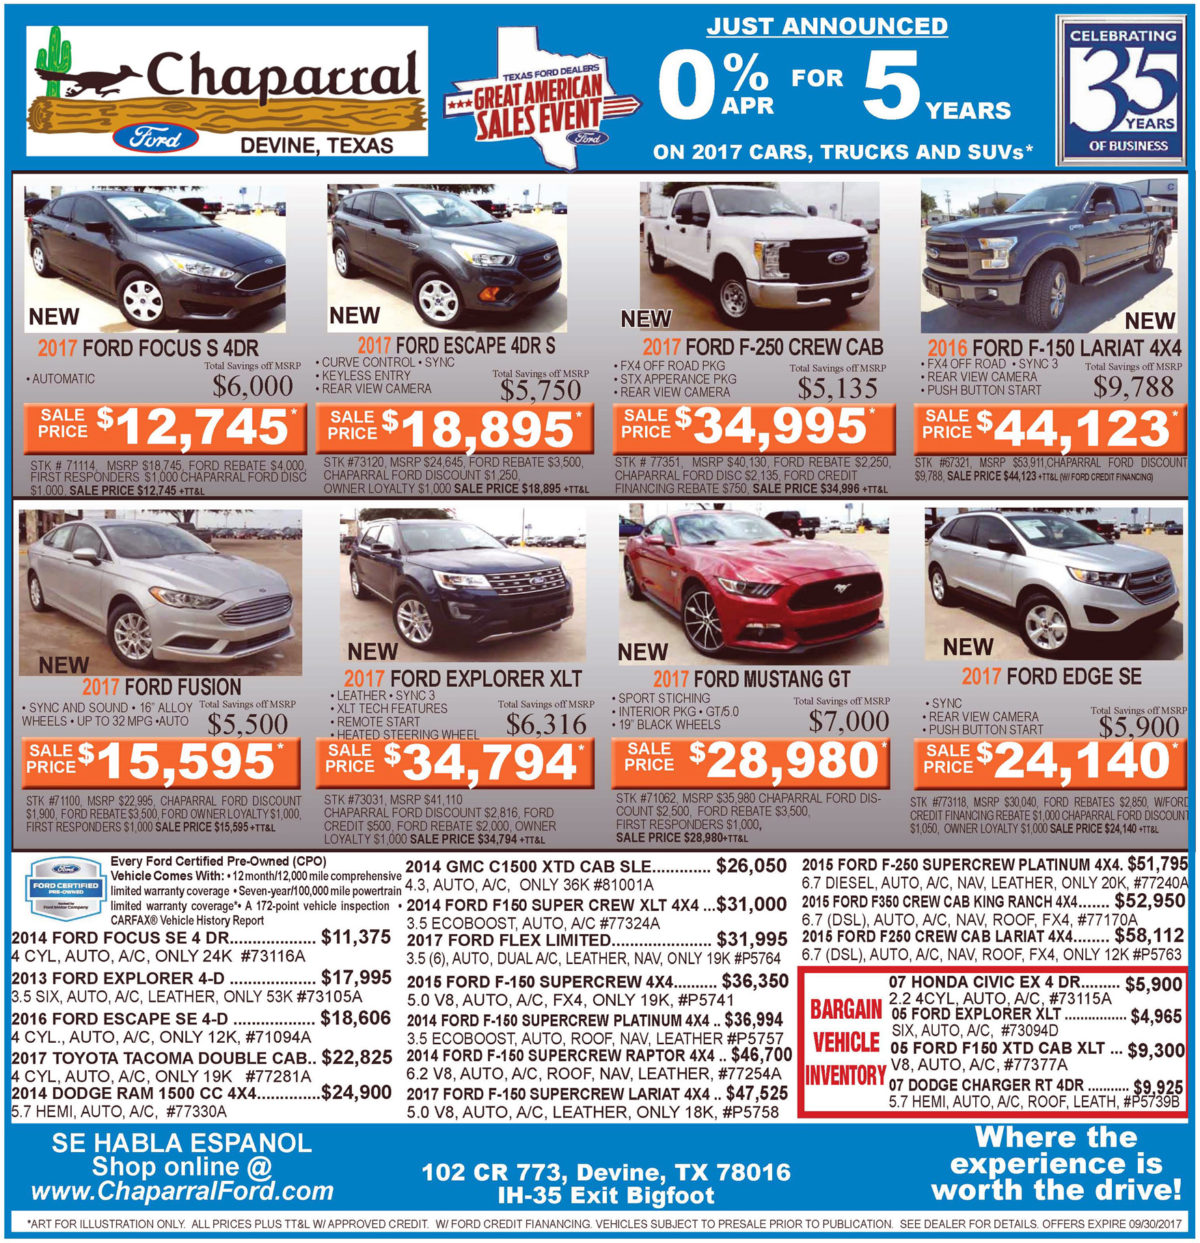 Chaparral Ford deals for the week of September 20, 2017